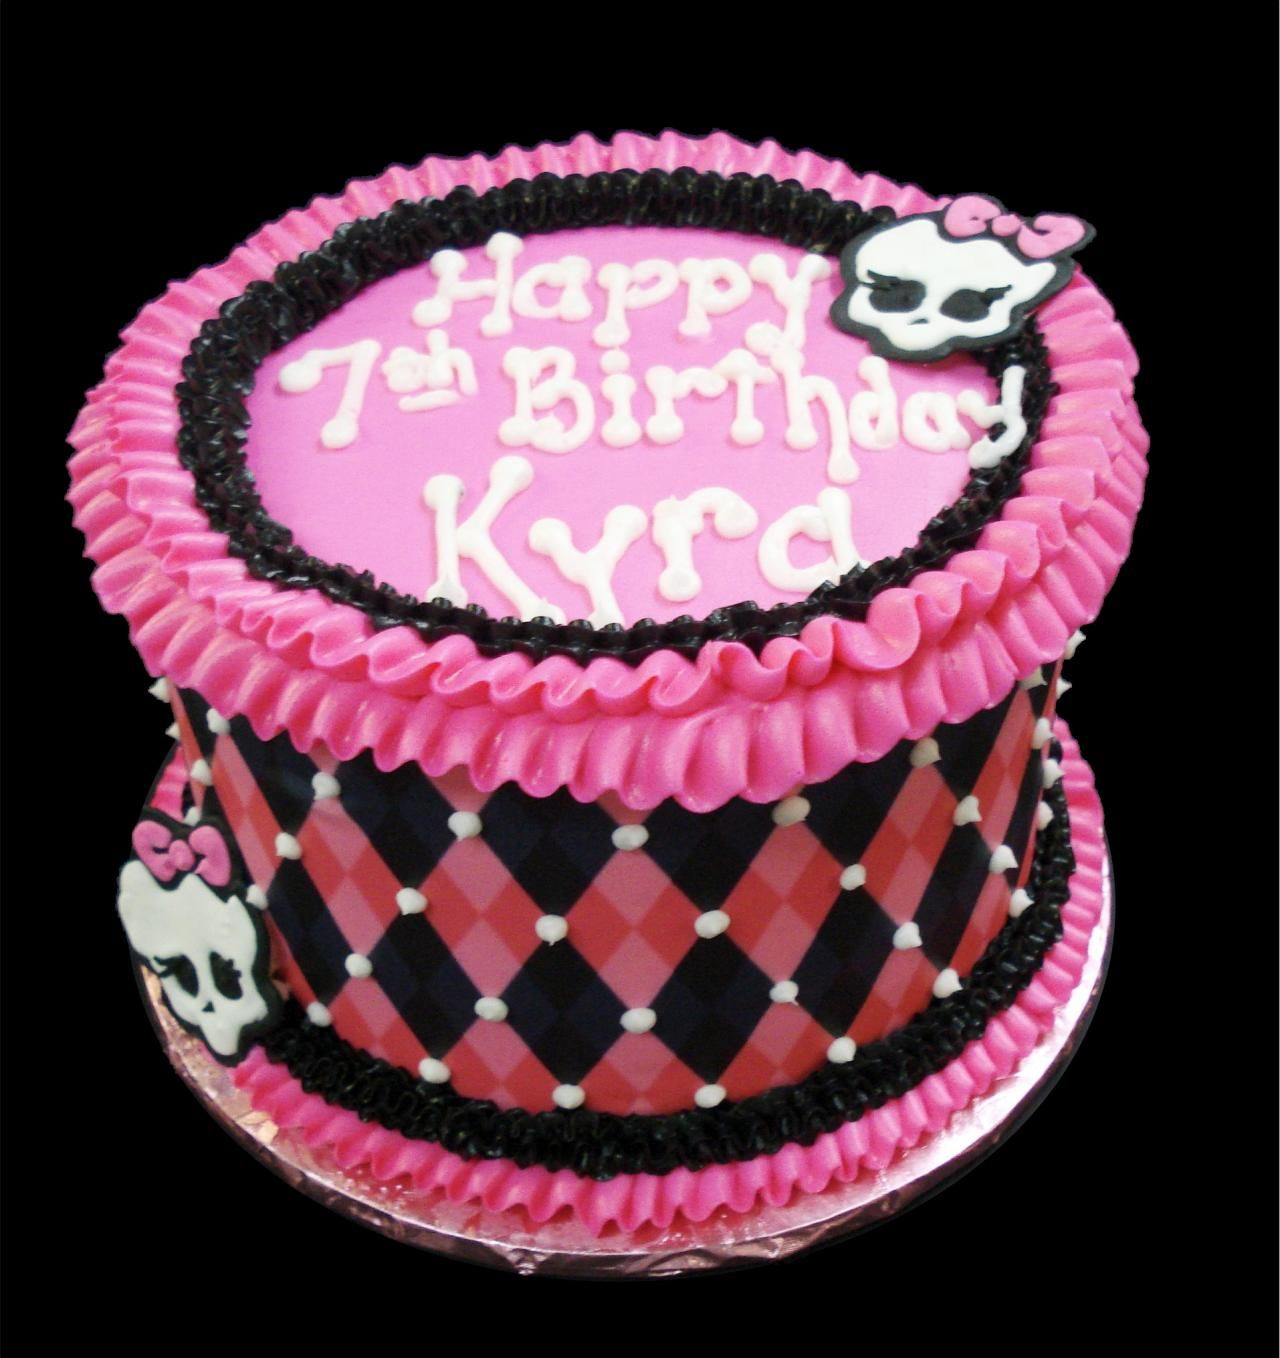 Girl Skull 7th Birthday Cake Pink buttercream iced round decorated